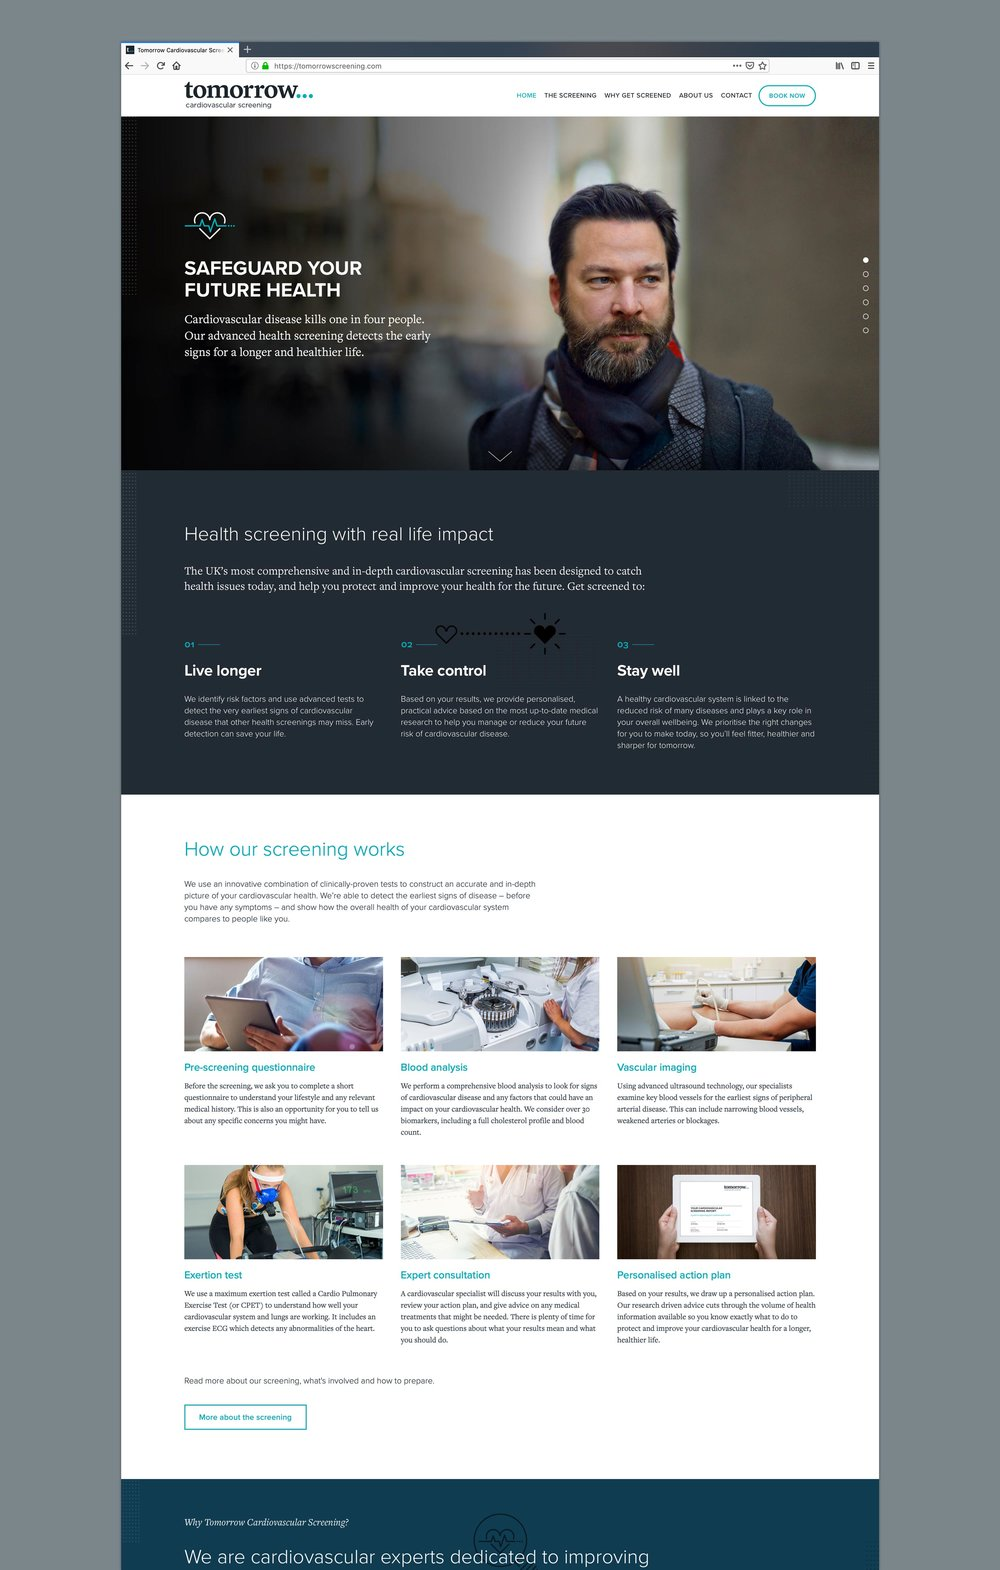 Tomorrow website home page – design by Ian whalley